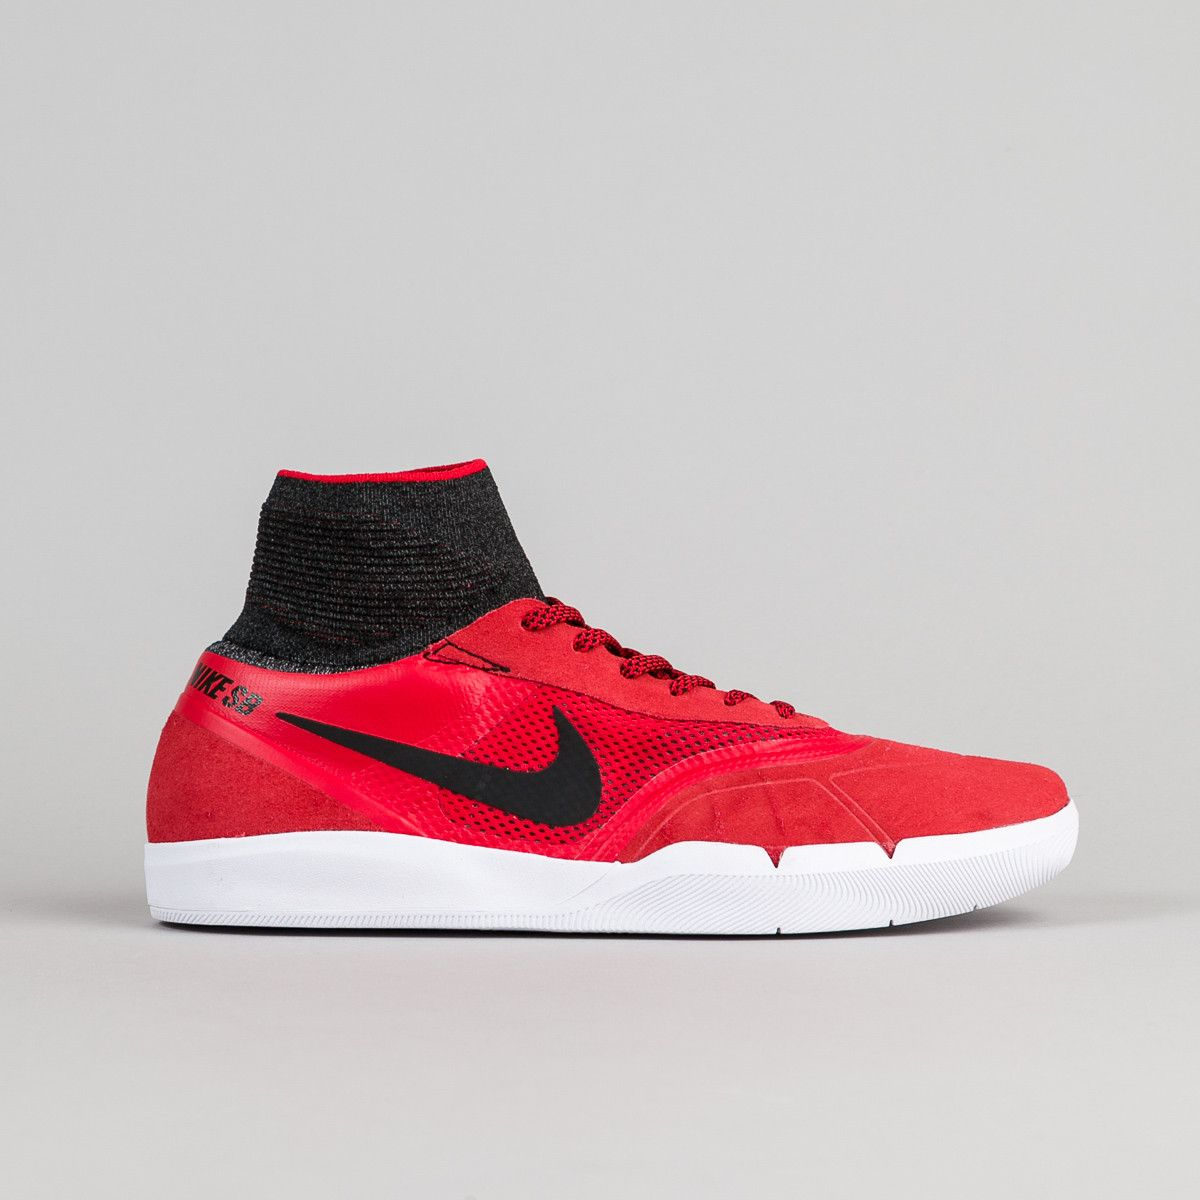 Nike SB Koston 3 Hyperfeel Shoes - University Red   Black - White ... d1e4c1f56e